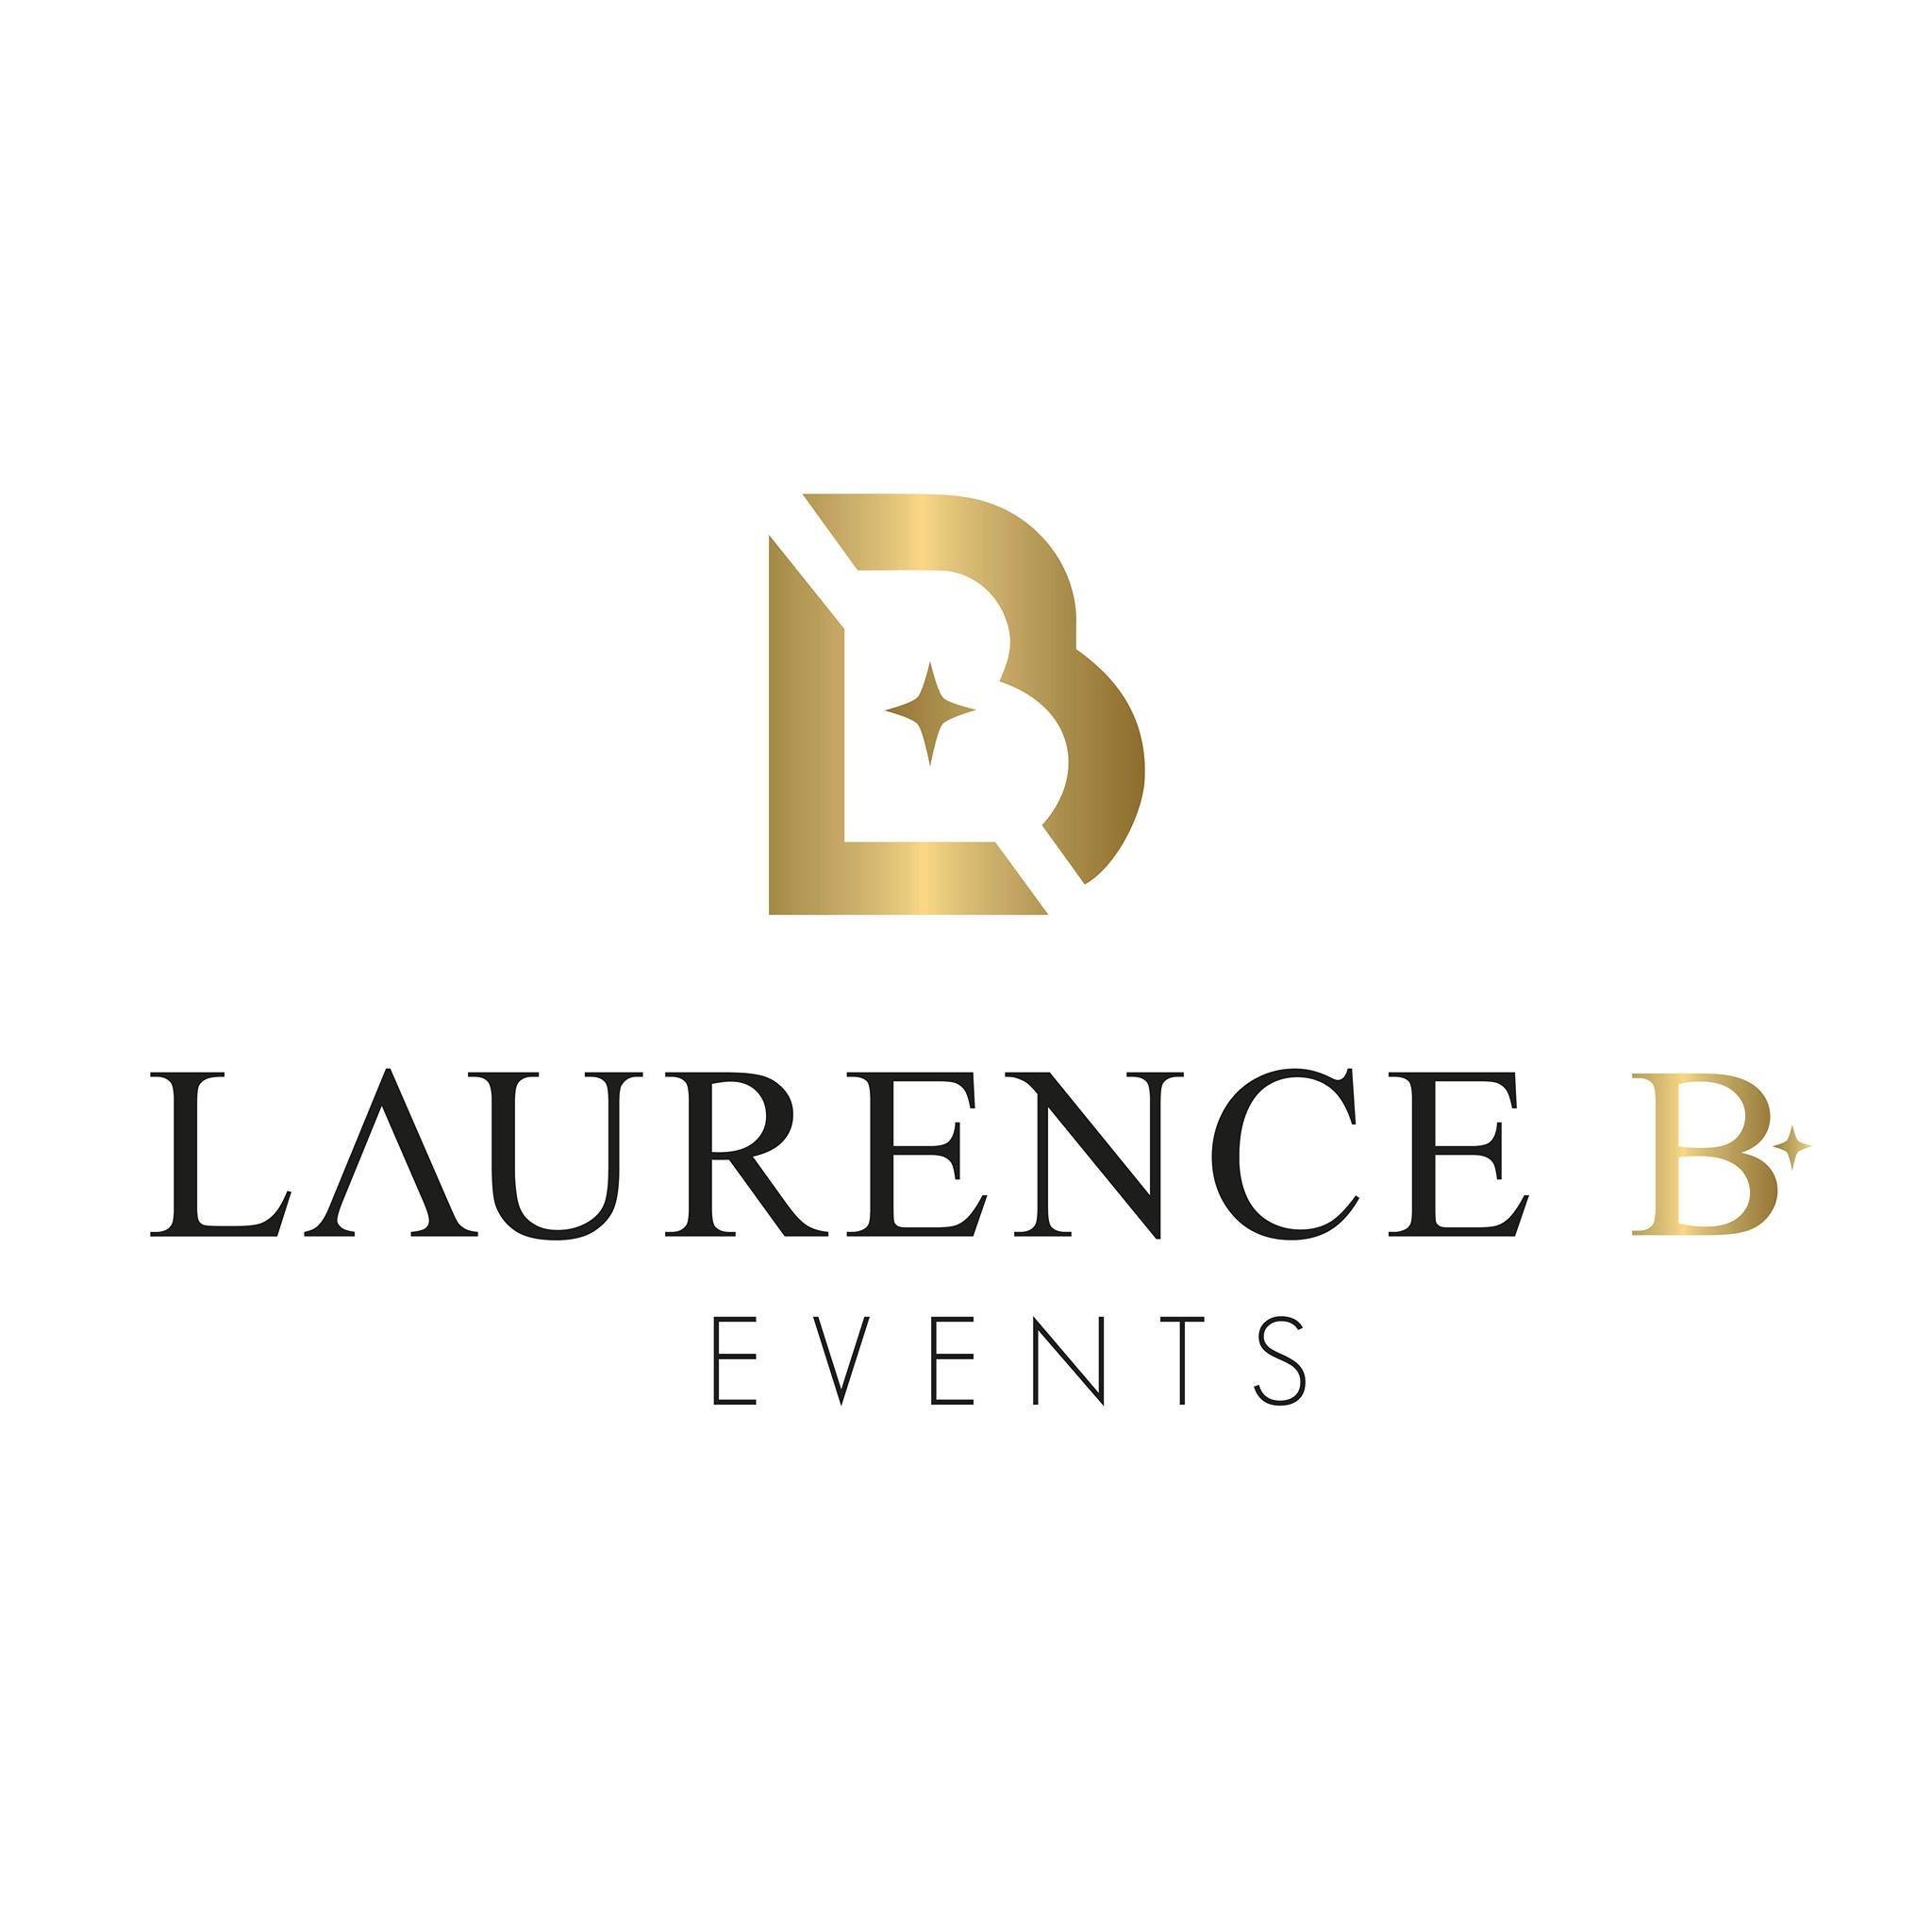 Laurence B Events